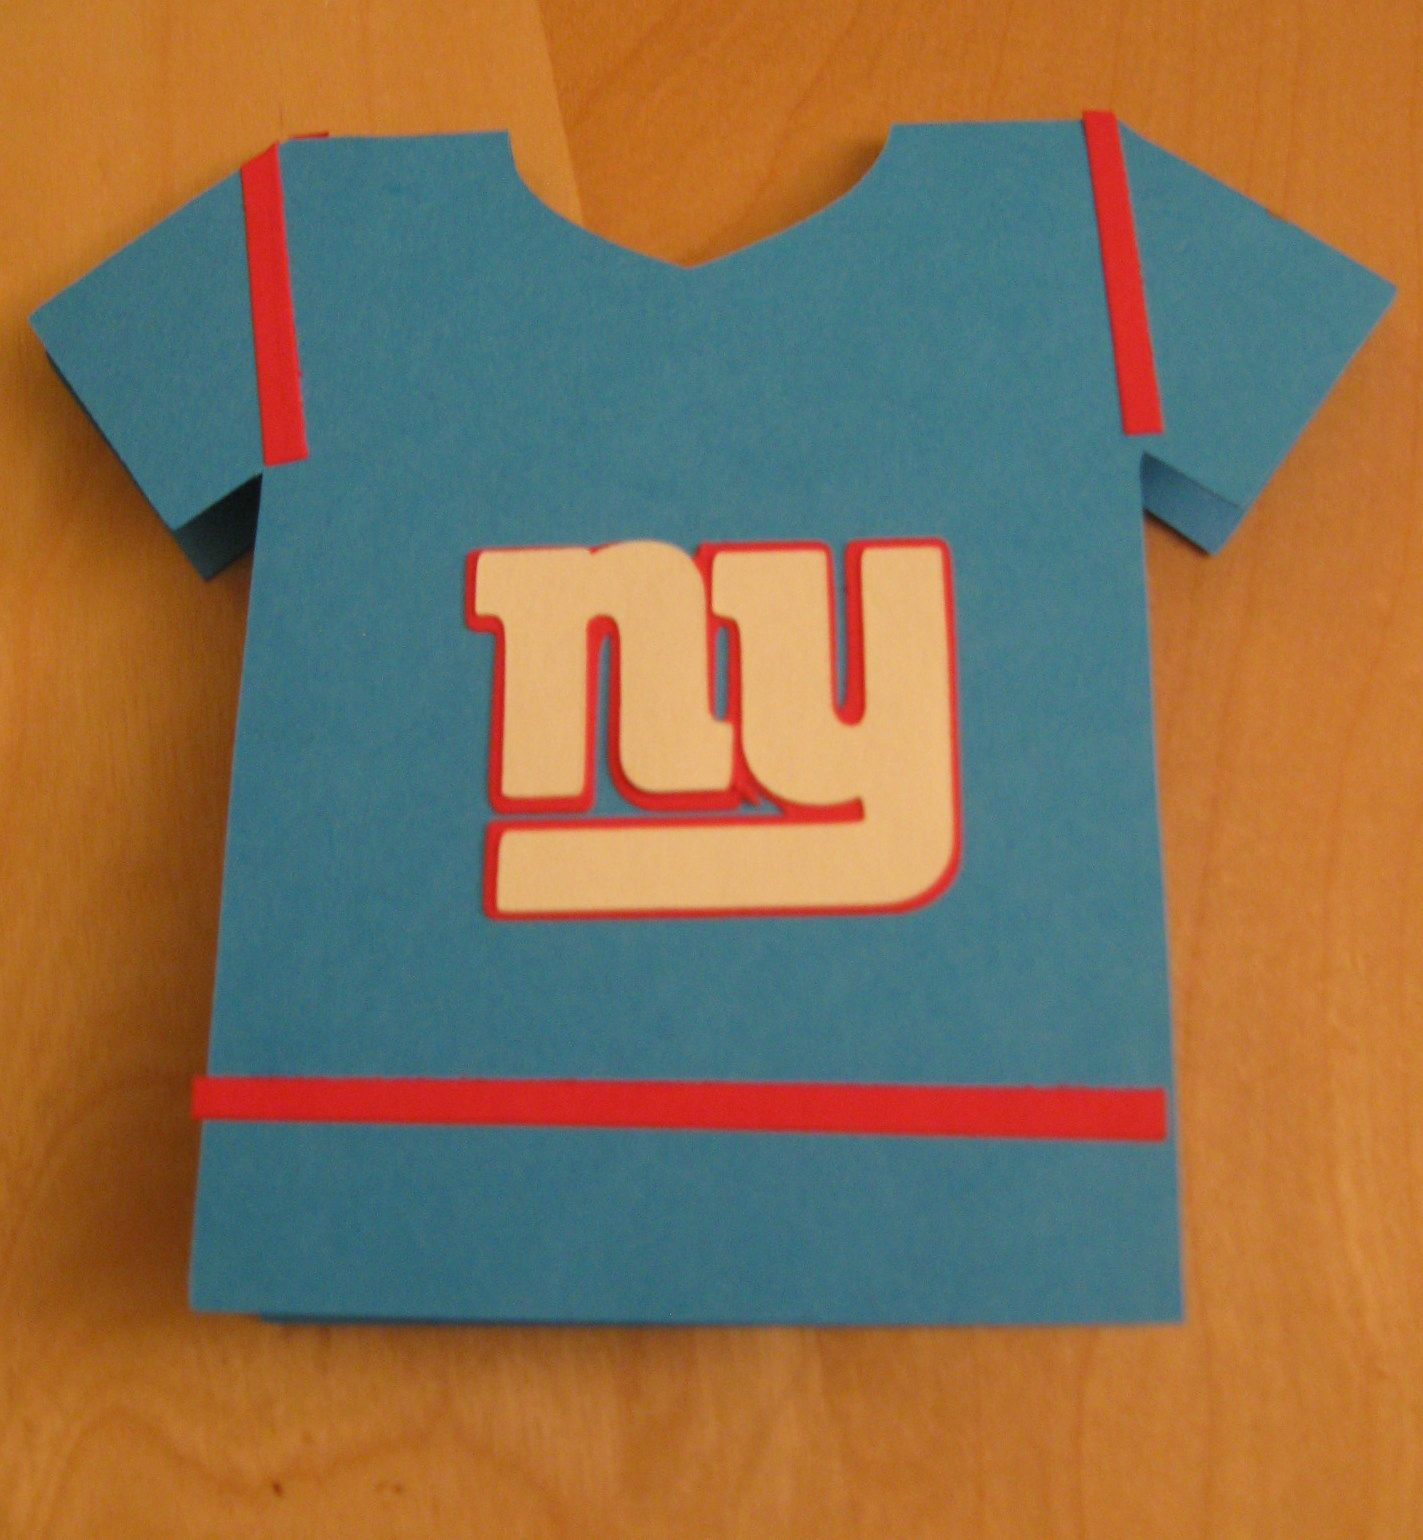 Ny Giants Birthday Card My Scrapbooking And Card Creations 2013 15